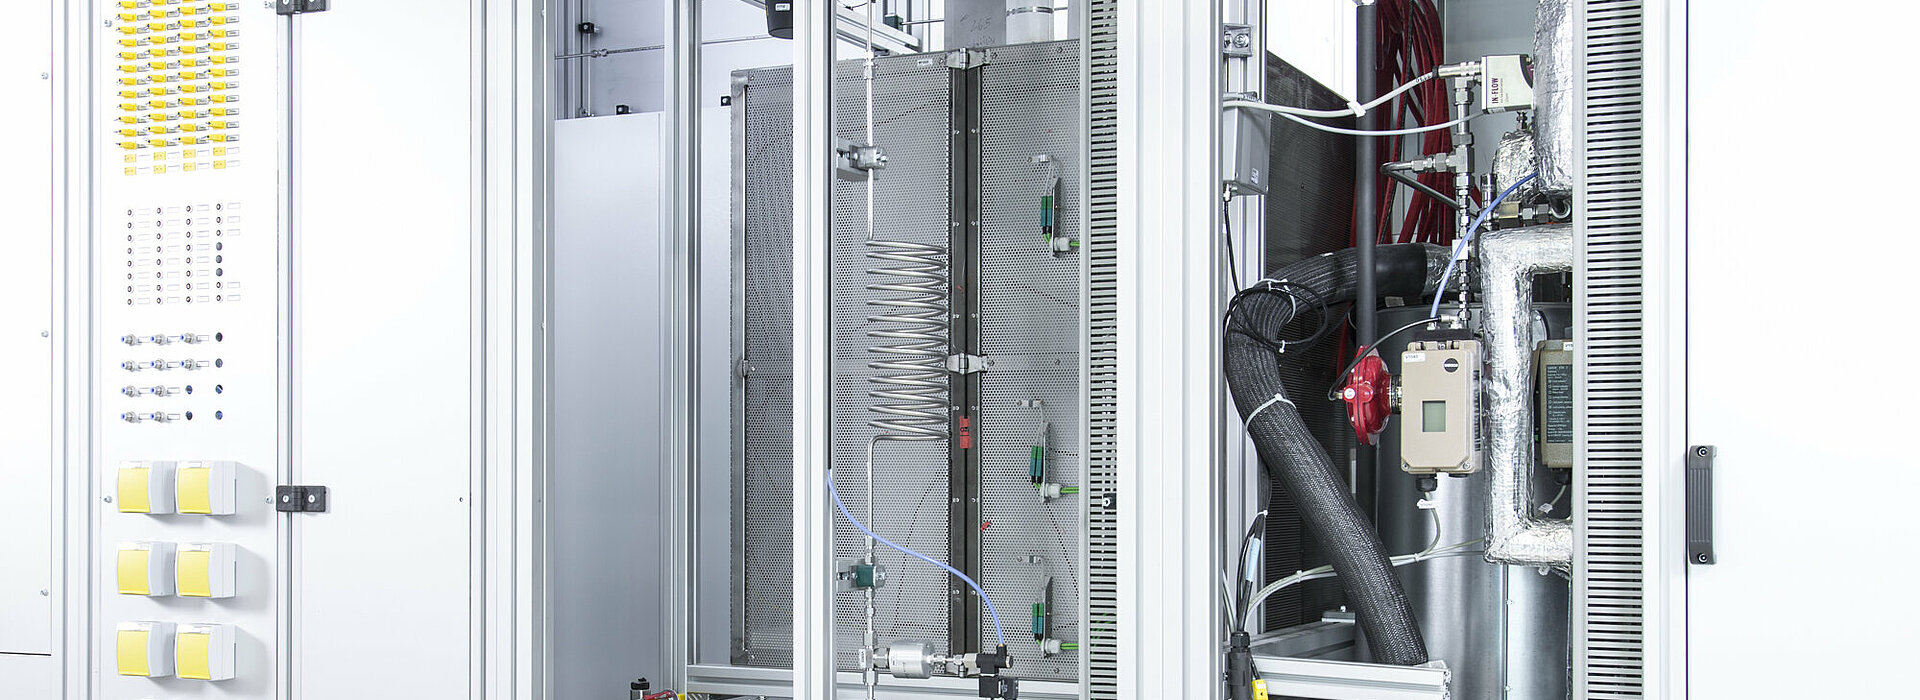 Detailed Insight into a Test Station for SOFC Fuel Cell Systems